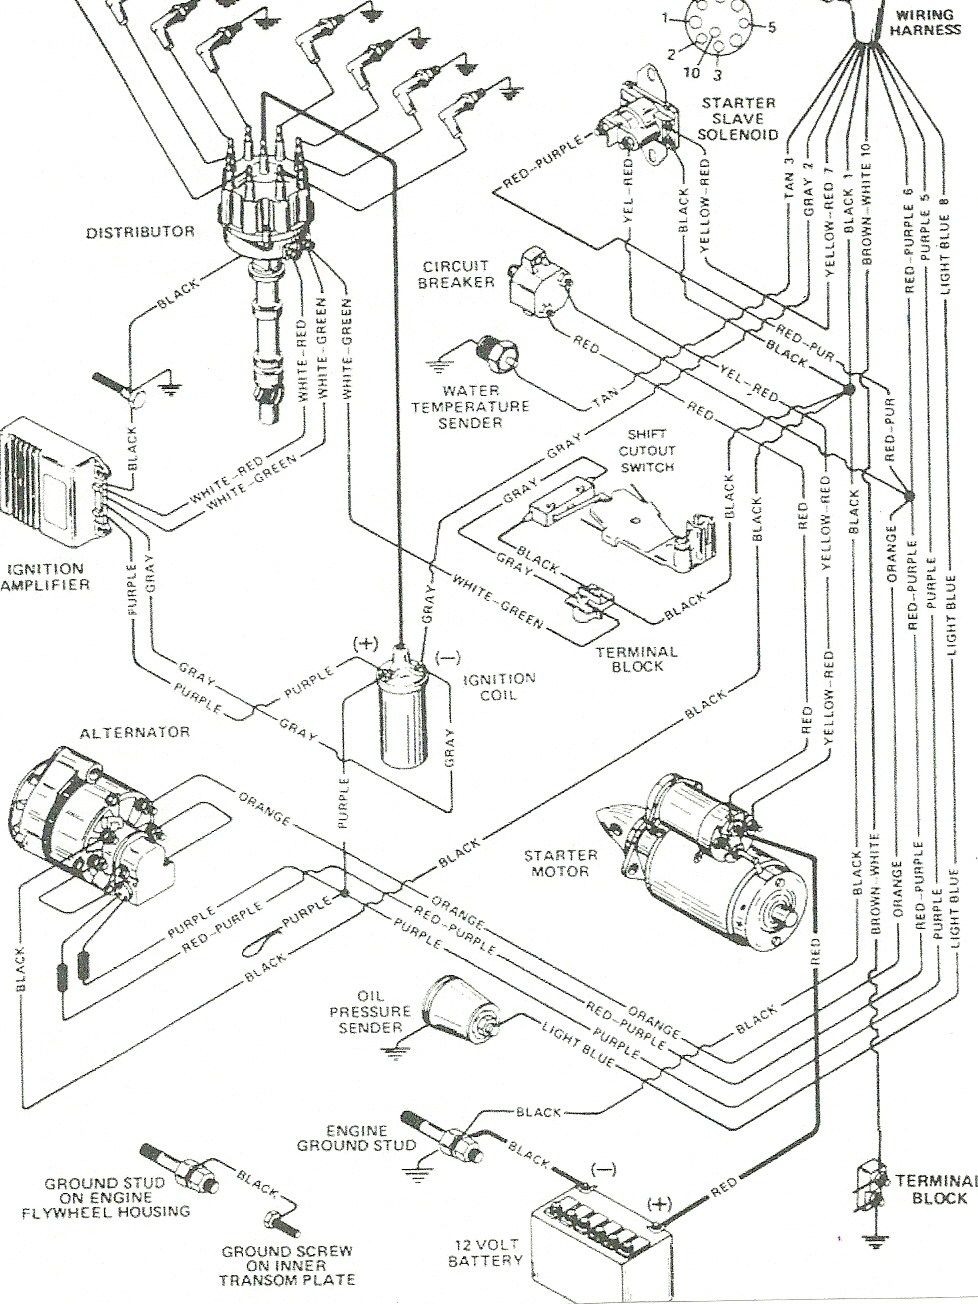 mercruiser 30 wiring diagram wiring diagram mercruiser 140 rh pinterest com 1984 mercruiser 140 wiring diagram 1985 mercruiser 140 wiring diagram